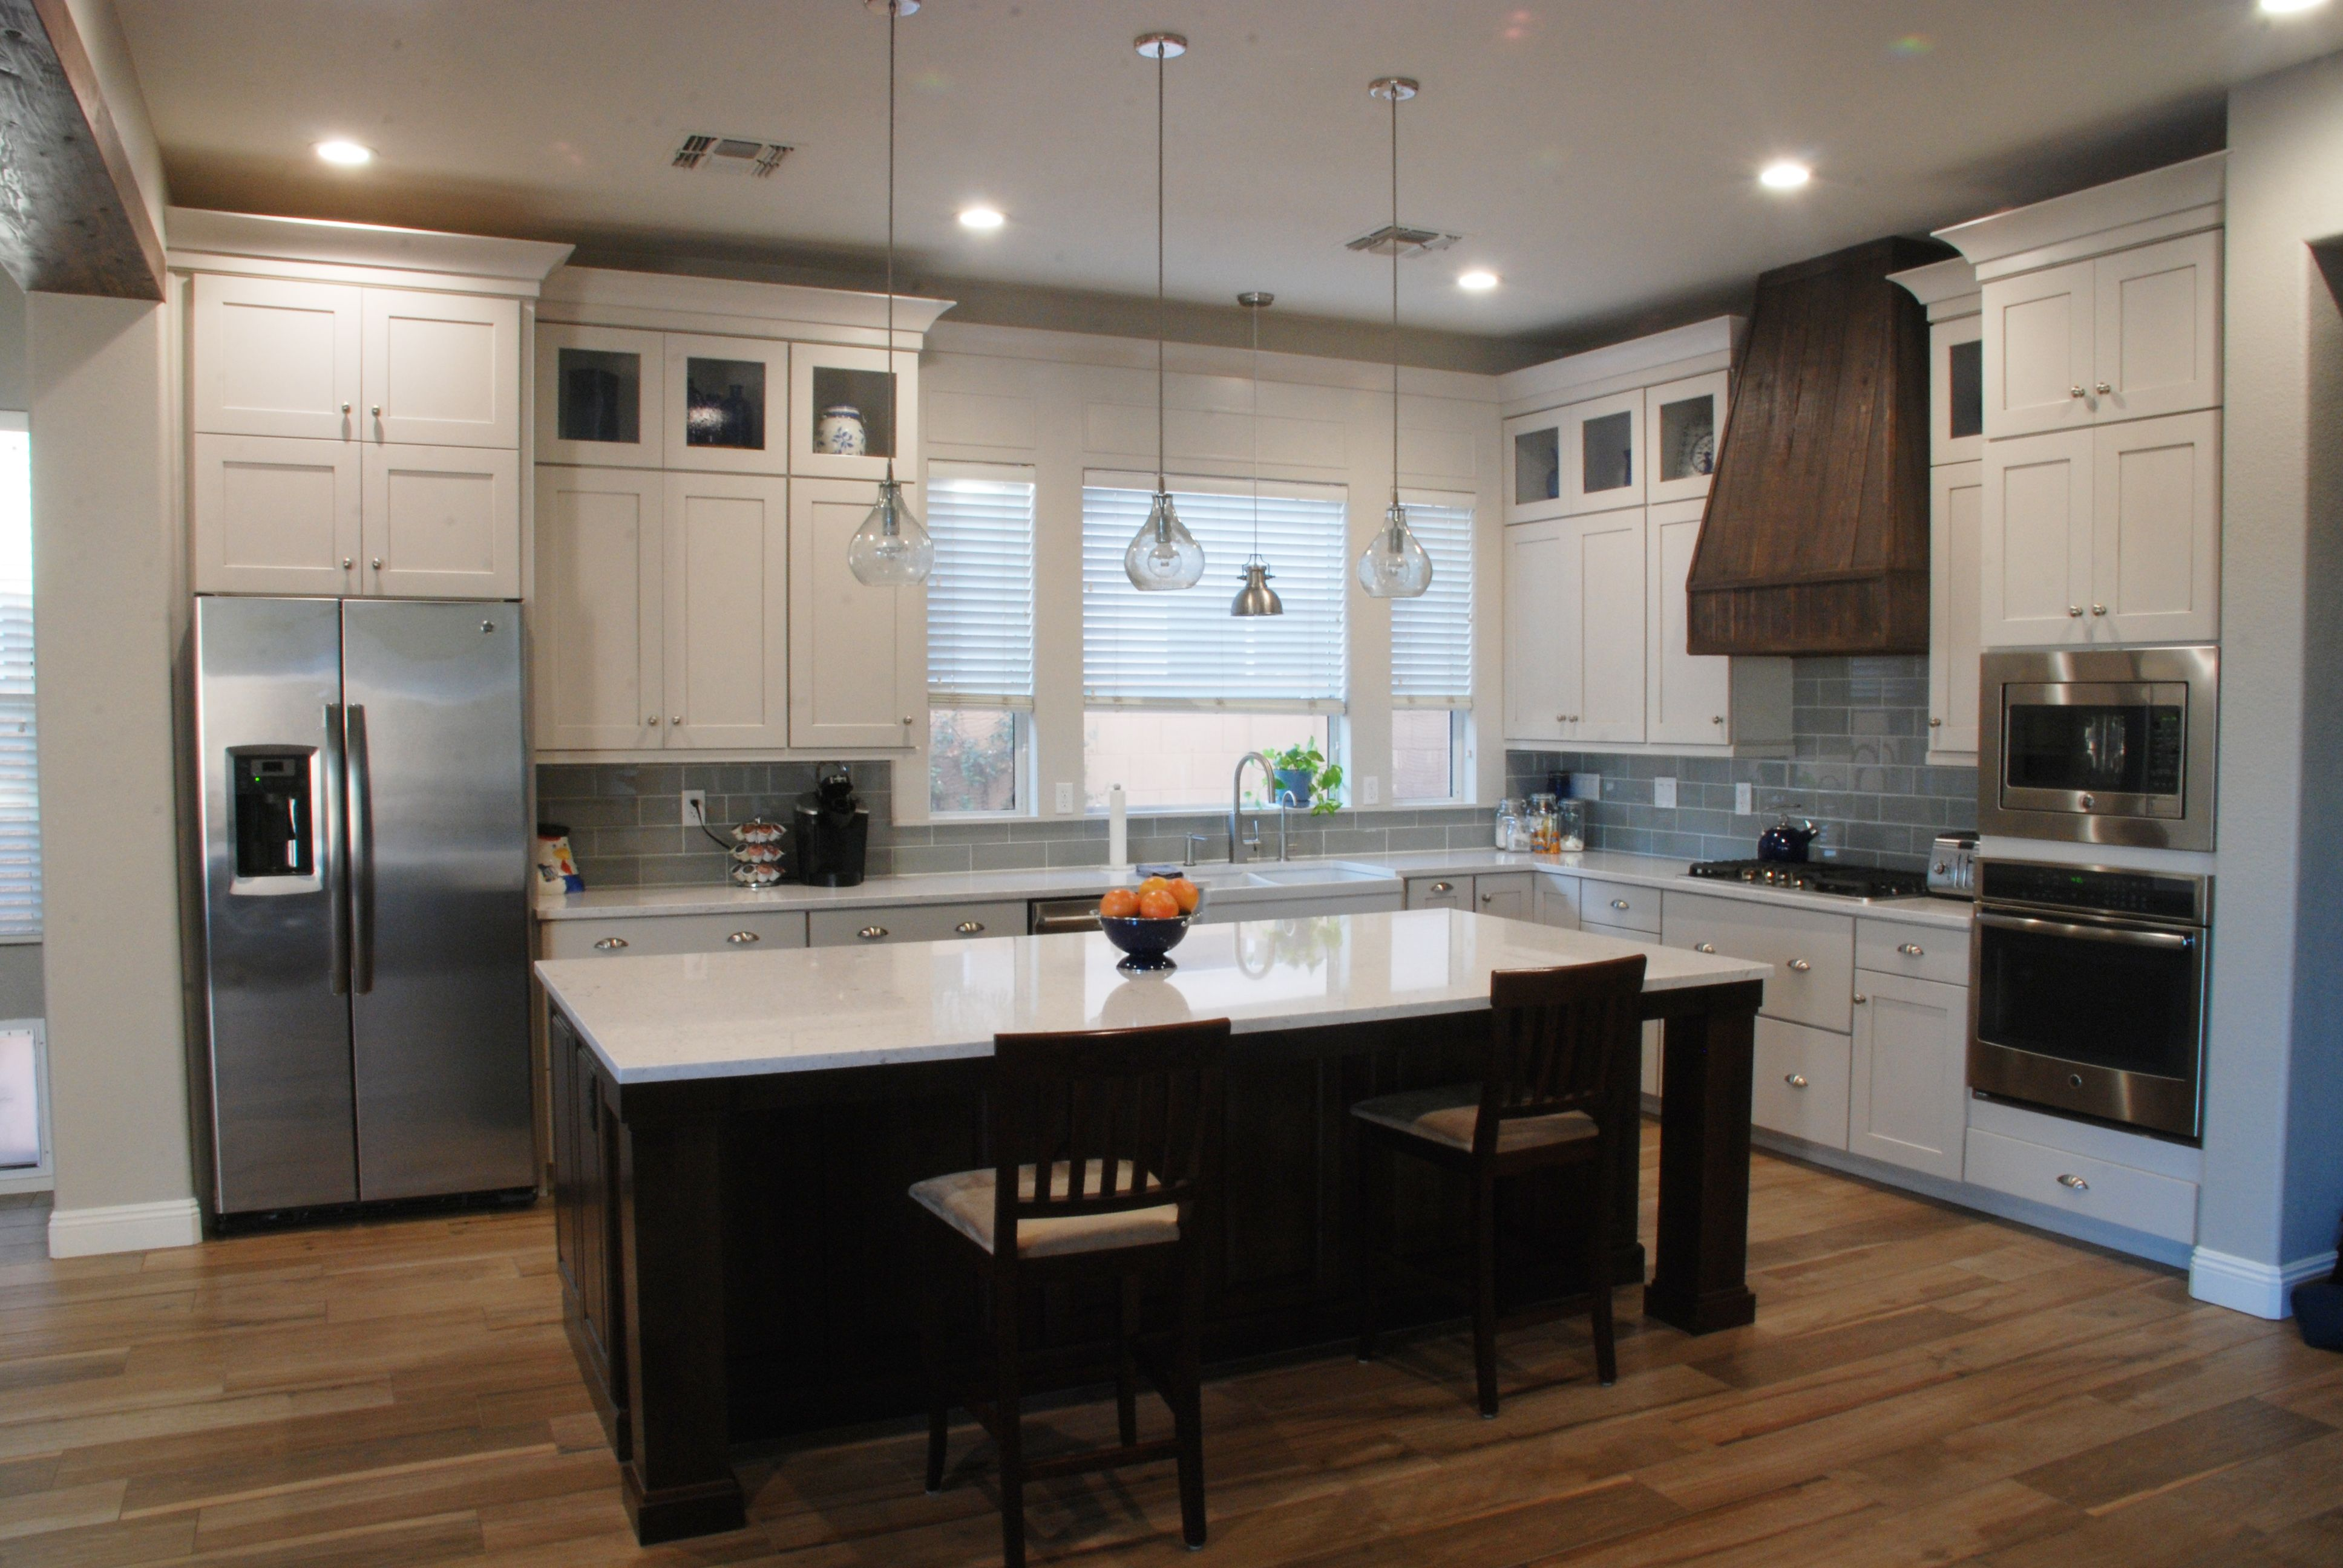 Overall Kitchen View Schrock Cabinets Elston Door On Perimeter In Dover With Graystone Used Kitchen Cabinets New Kitchen Inspiration Kitchen Cabinets Models